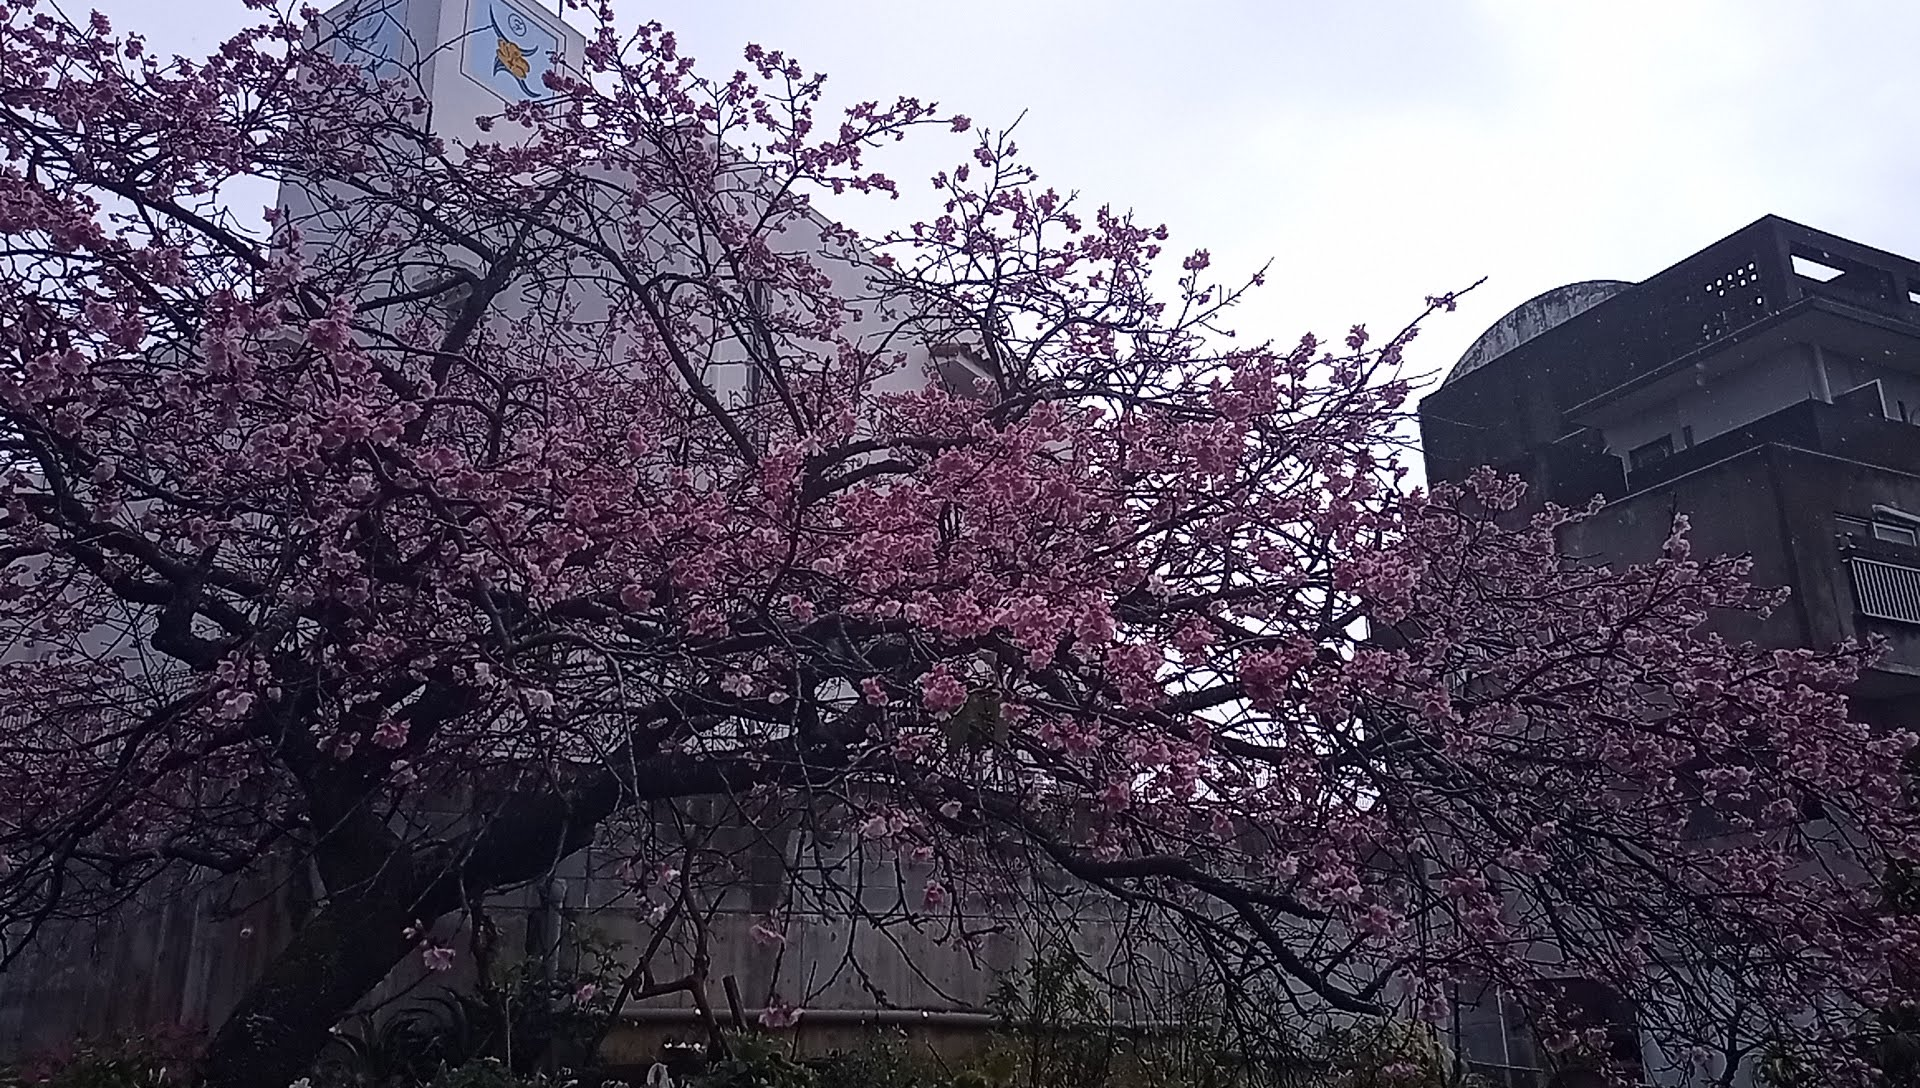 The cherry blossoms were beautiful in February